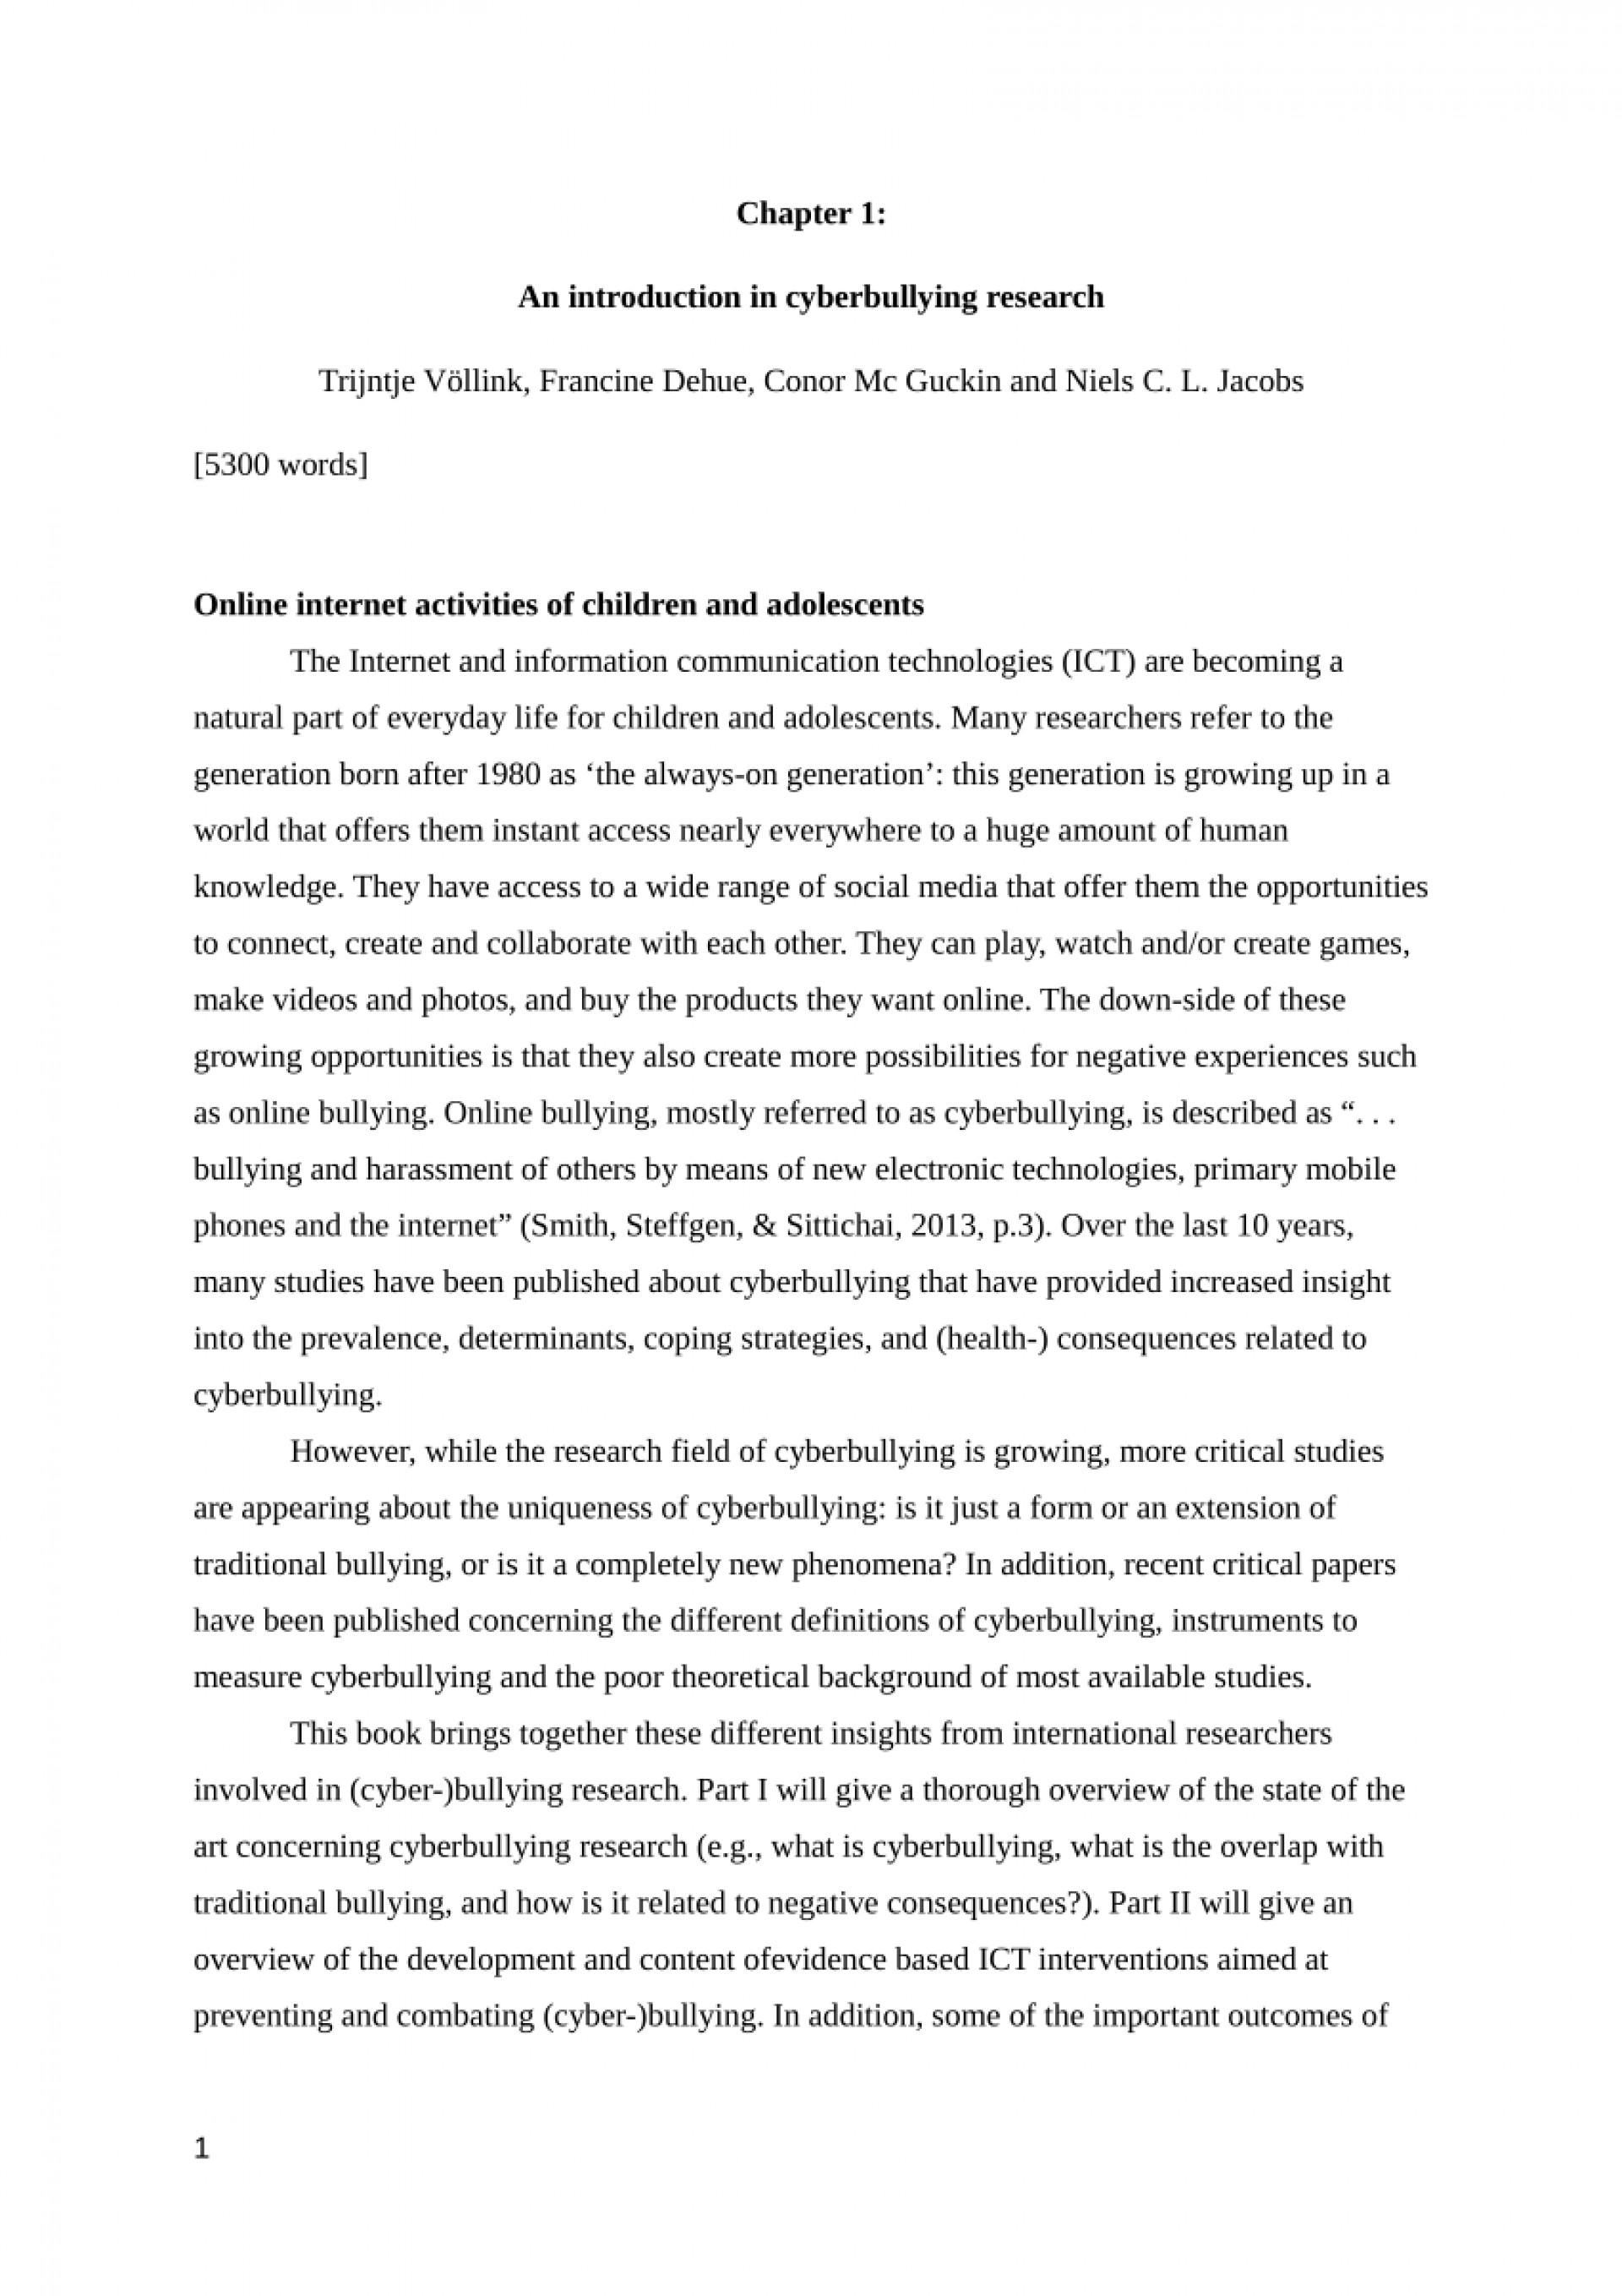 001 Cyberbullying Research Articles Paper Wondrous About Chapter 1 Studies On The Effects Of In Philippines Pdf 1920